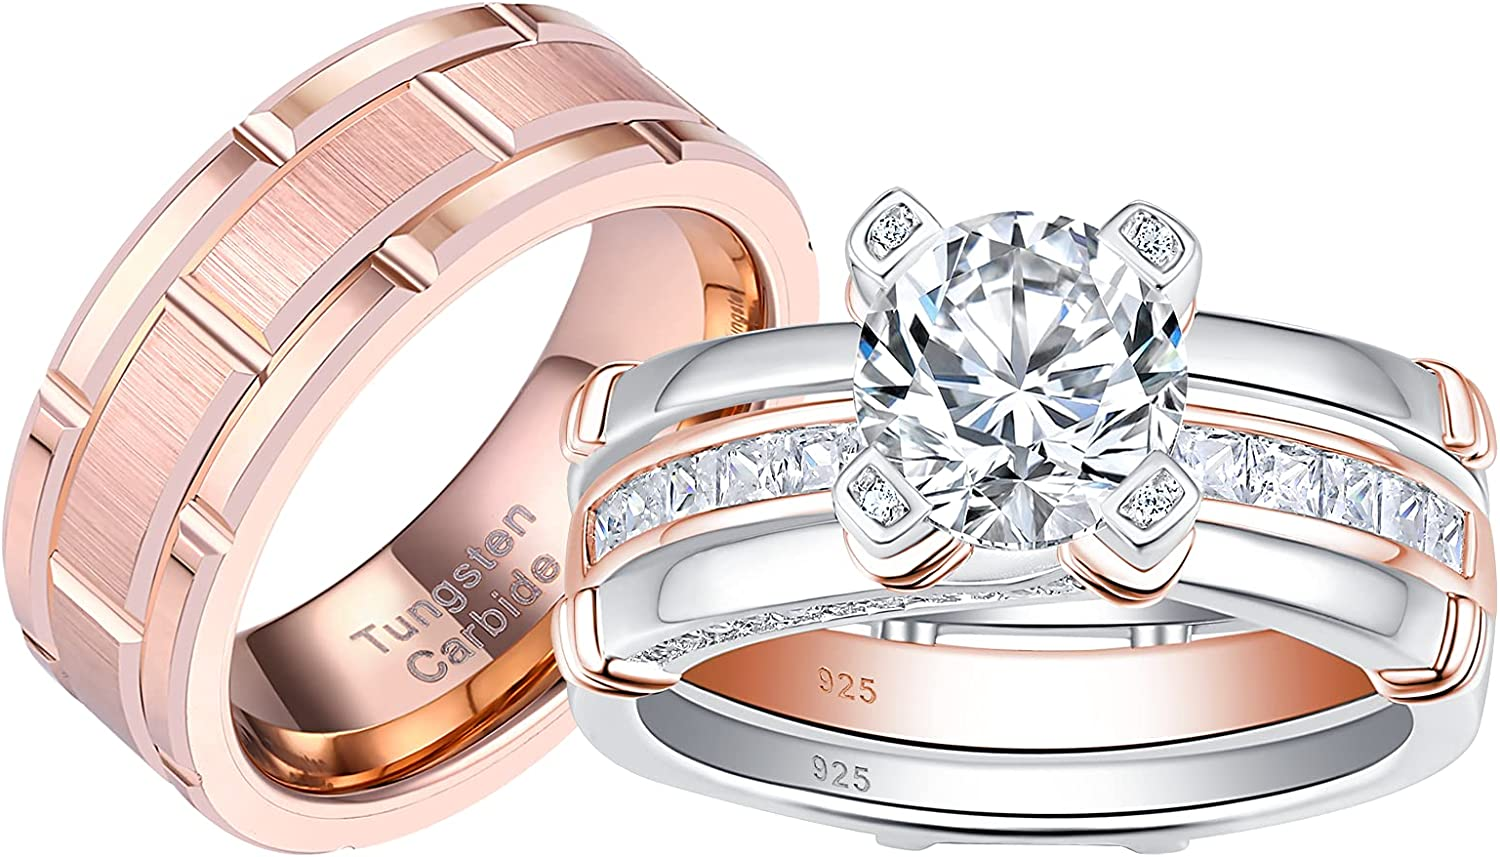 Blongme Fort Worth Mall Wedding Ring Sets excellence for him and Silver her Women Sterling